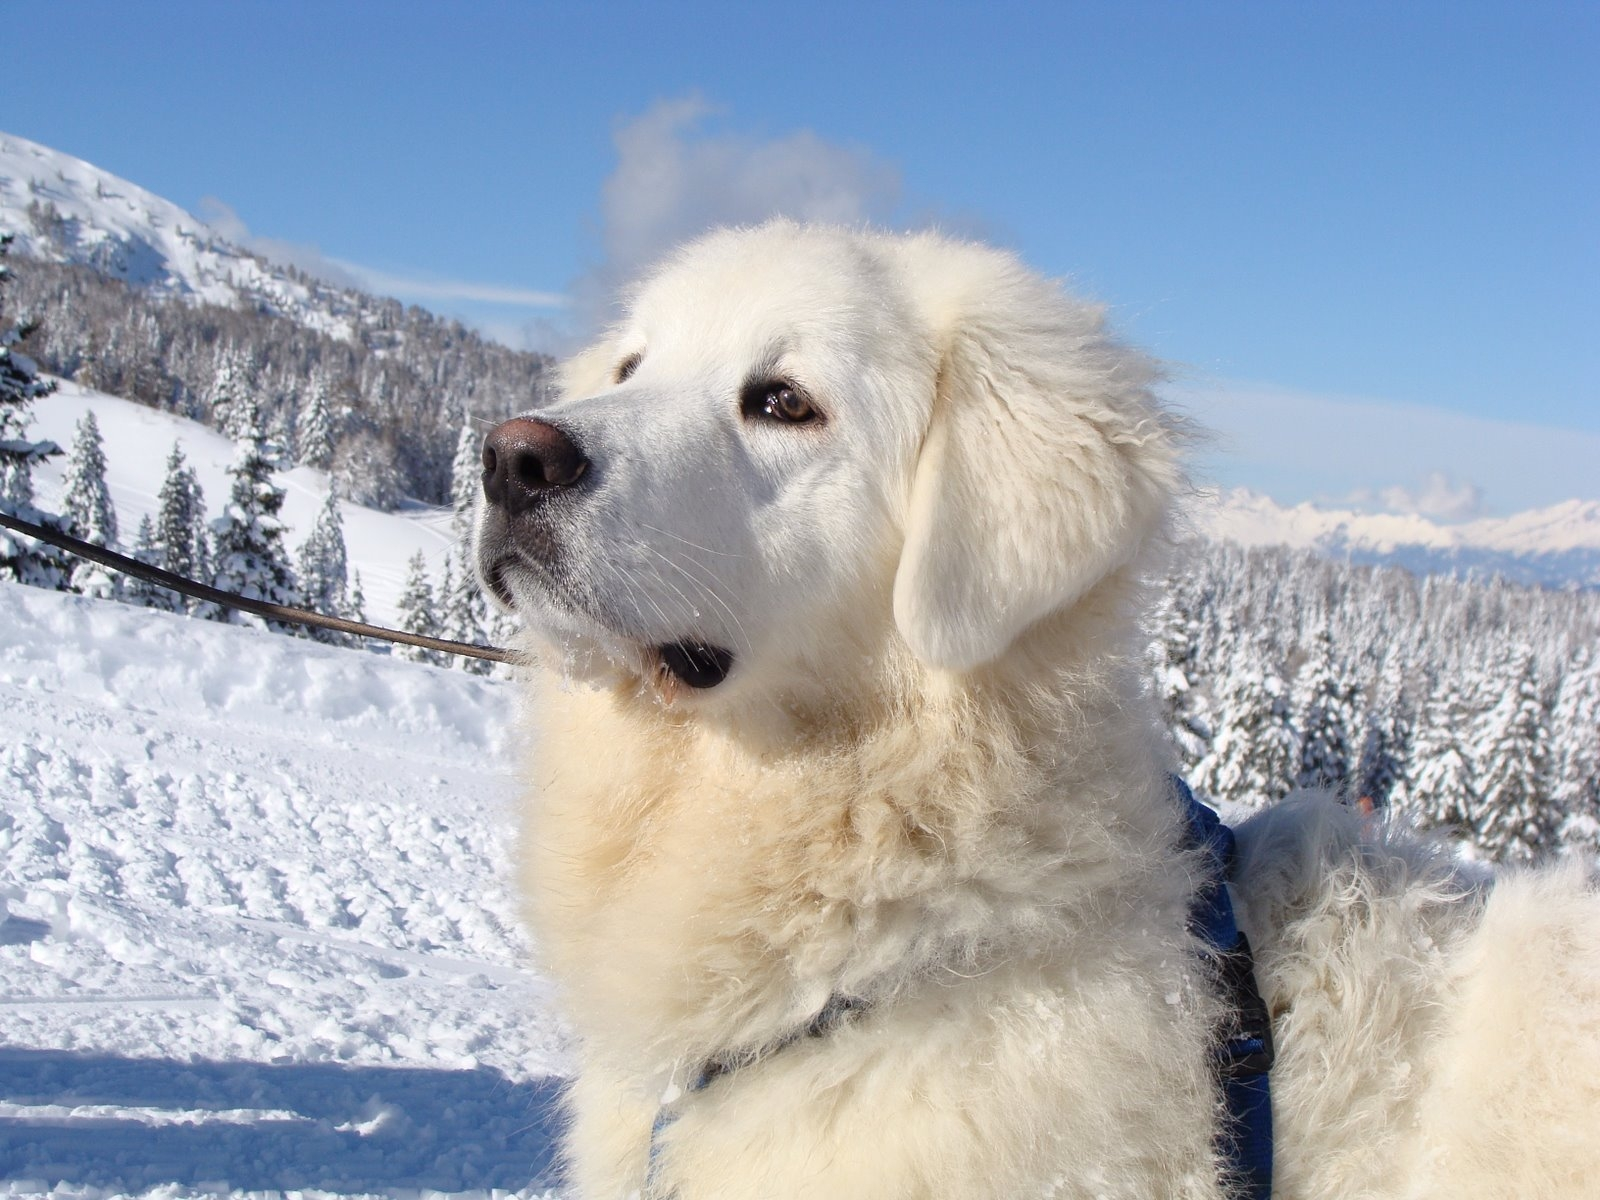 Winter Wallpaper Dogs Winter Slovak Cuvac dog photo and wallpaper Beautiful Winter Slovak